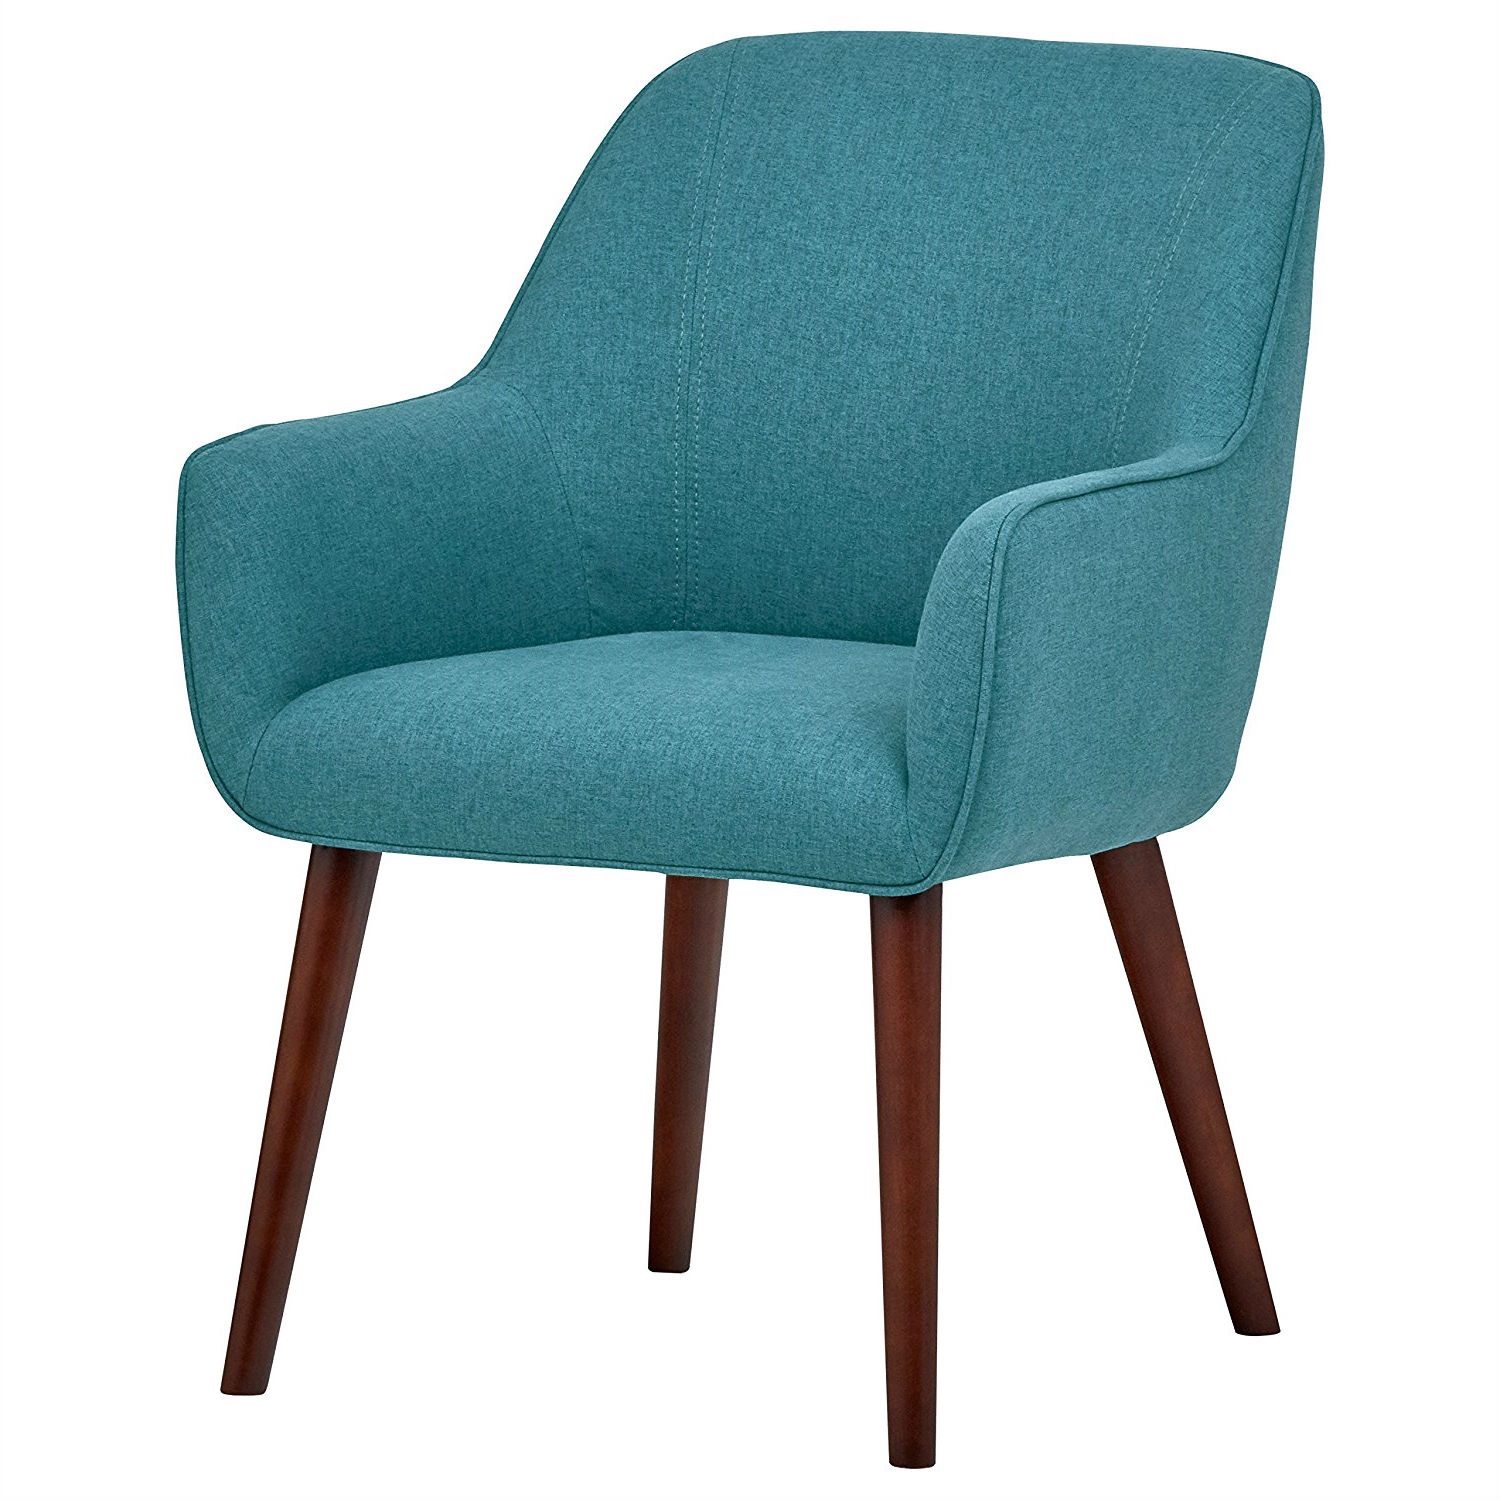 Aqua Dining Chairs Modern Mid Century Style Accent Dining Chair With Wood Legs And Aqua Blue Upholstery